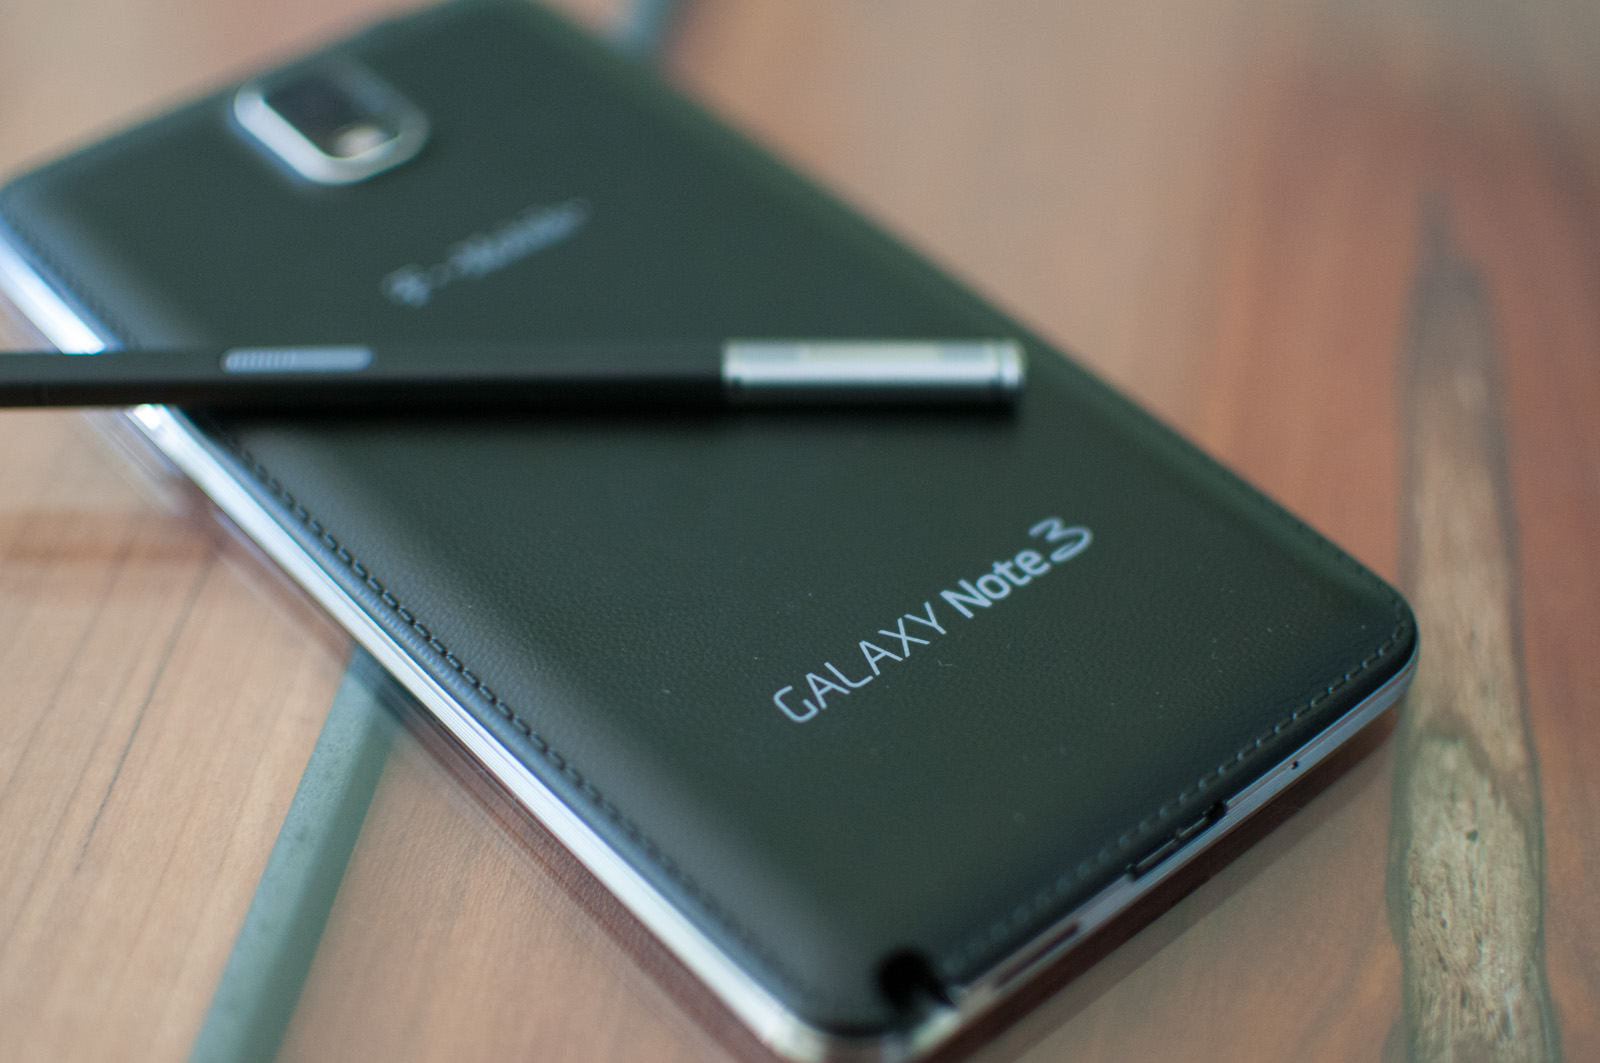 Julie's gadget diary – A week with the Samsung Galaxy Note 3